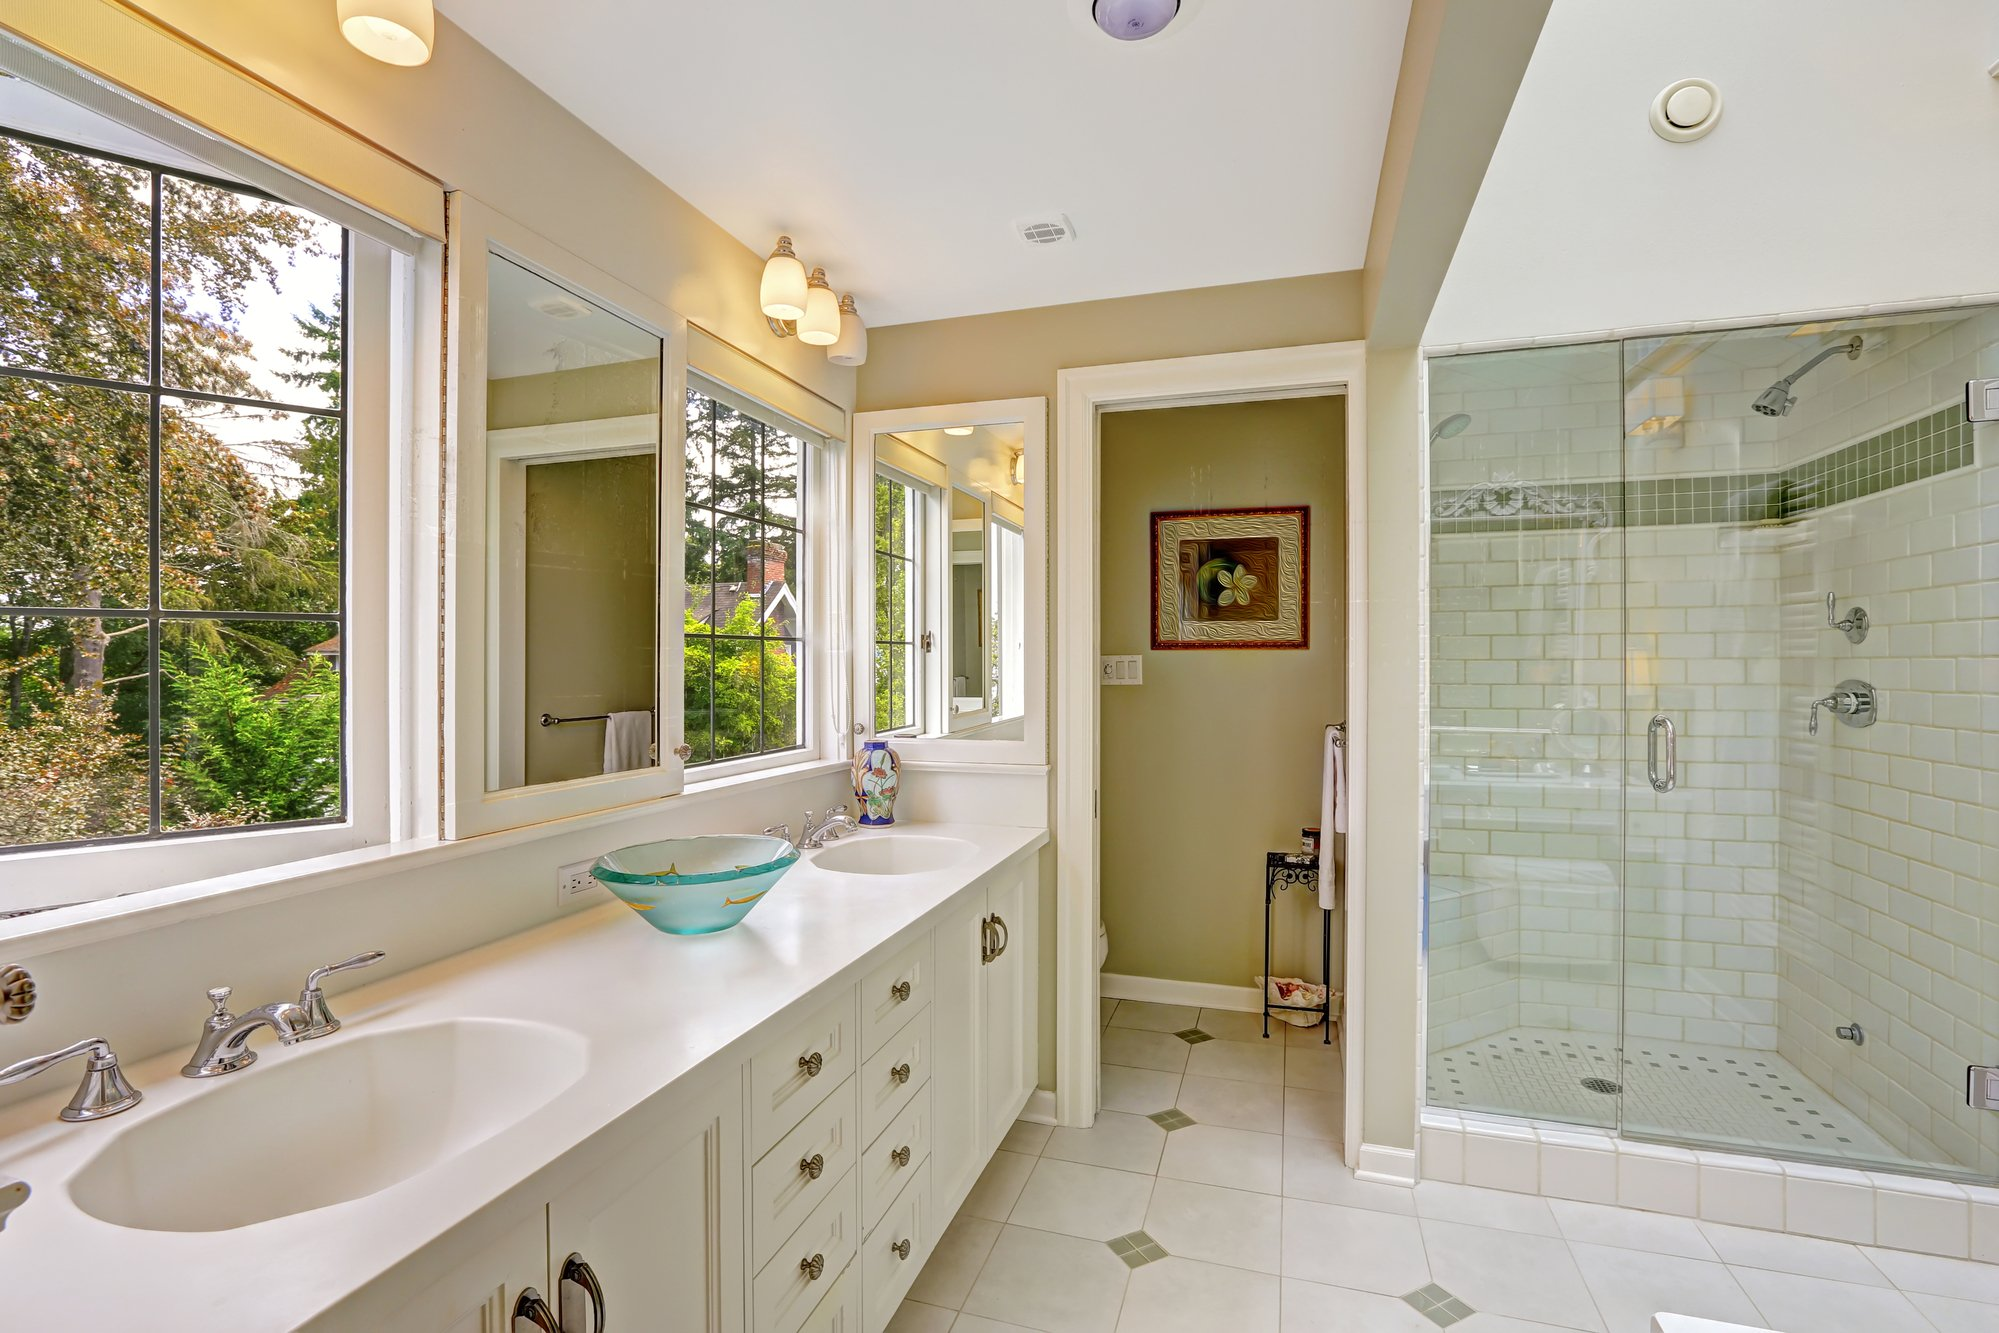 San Antonio Bathroom Remodel Prepossessing Bathroom Remodeling In San Antonio Texas  Jyra Home Solutions Decorating Inspiration